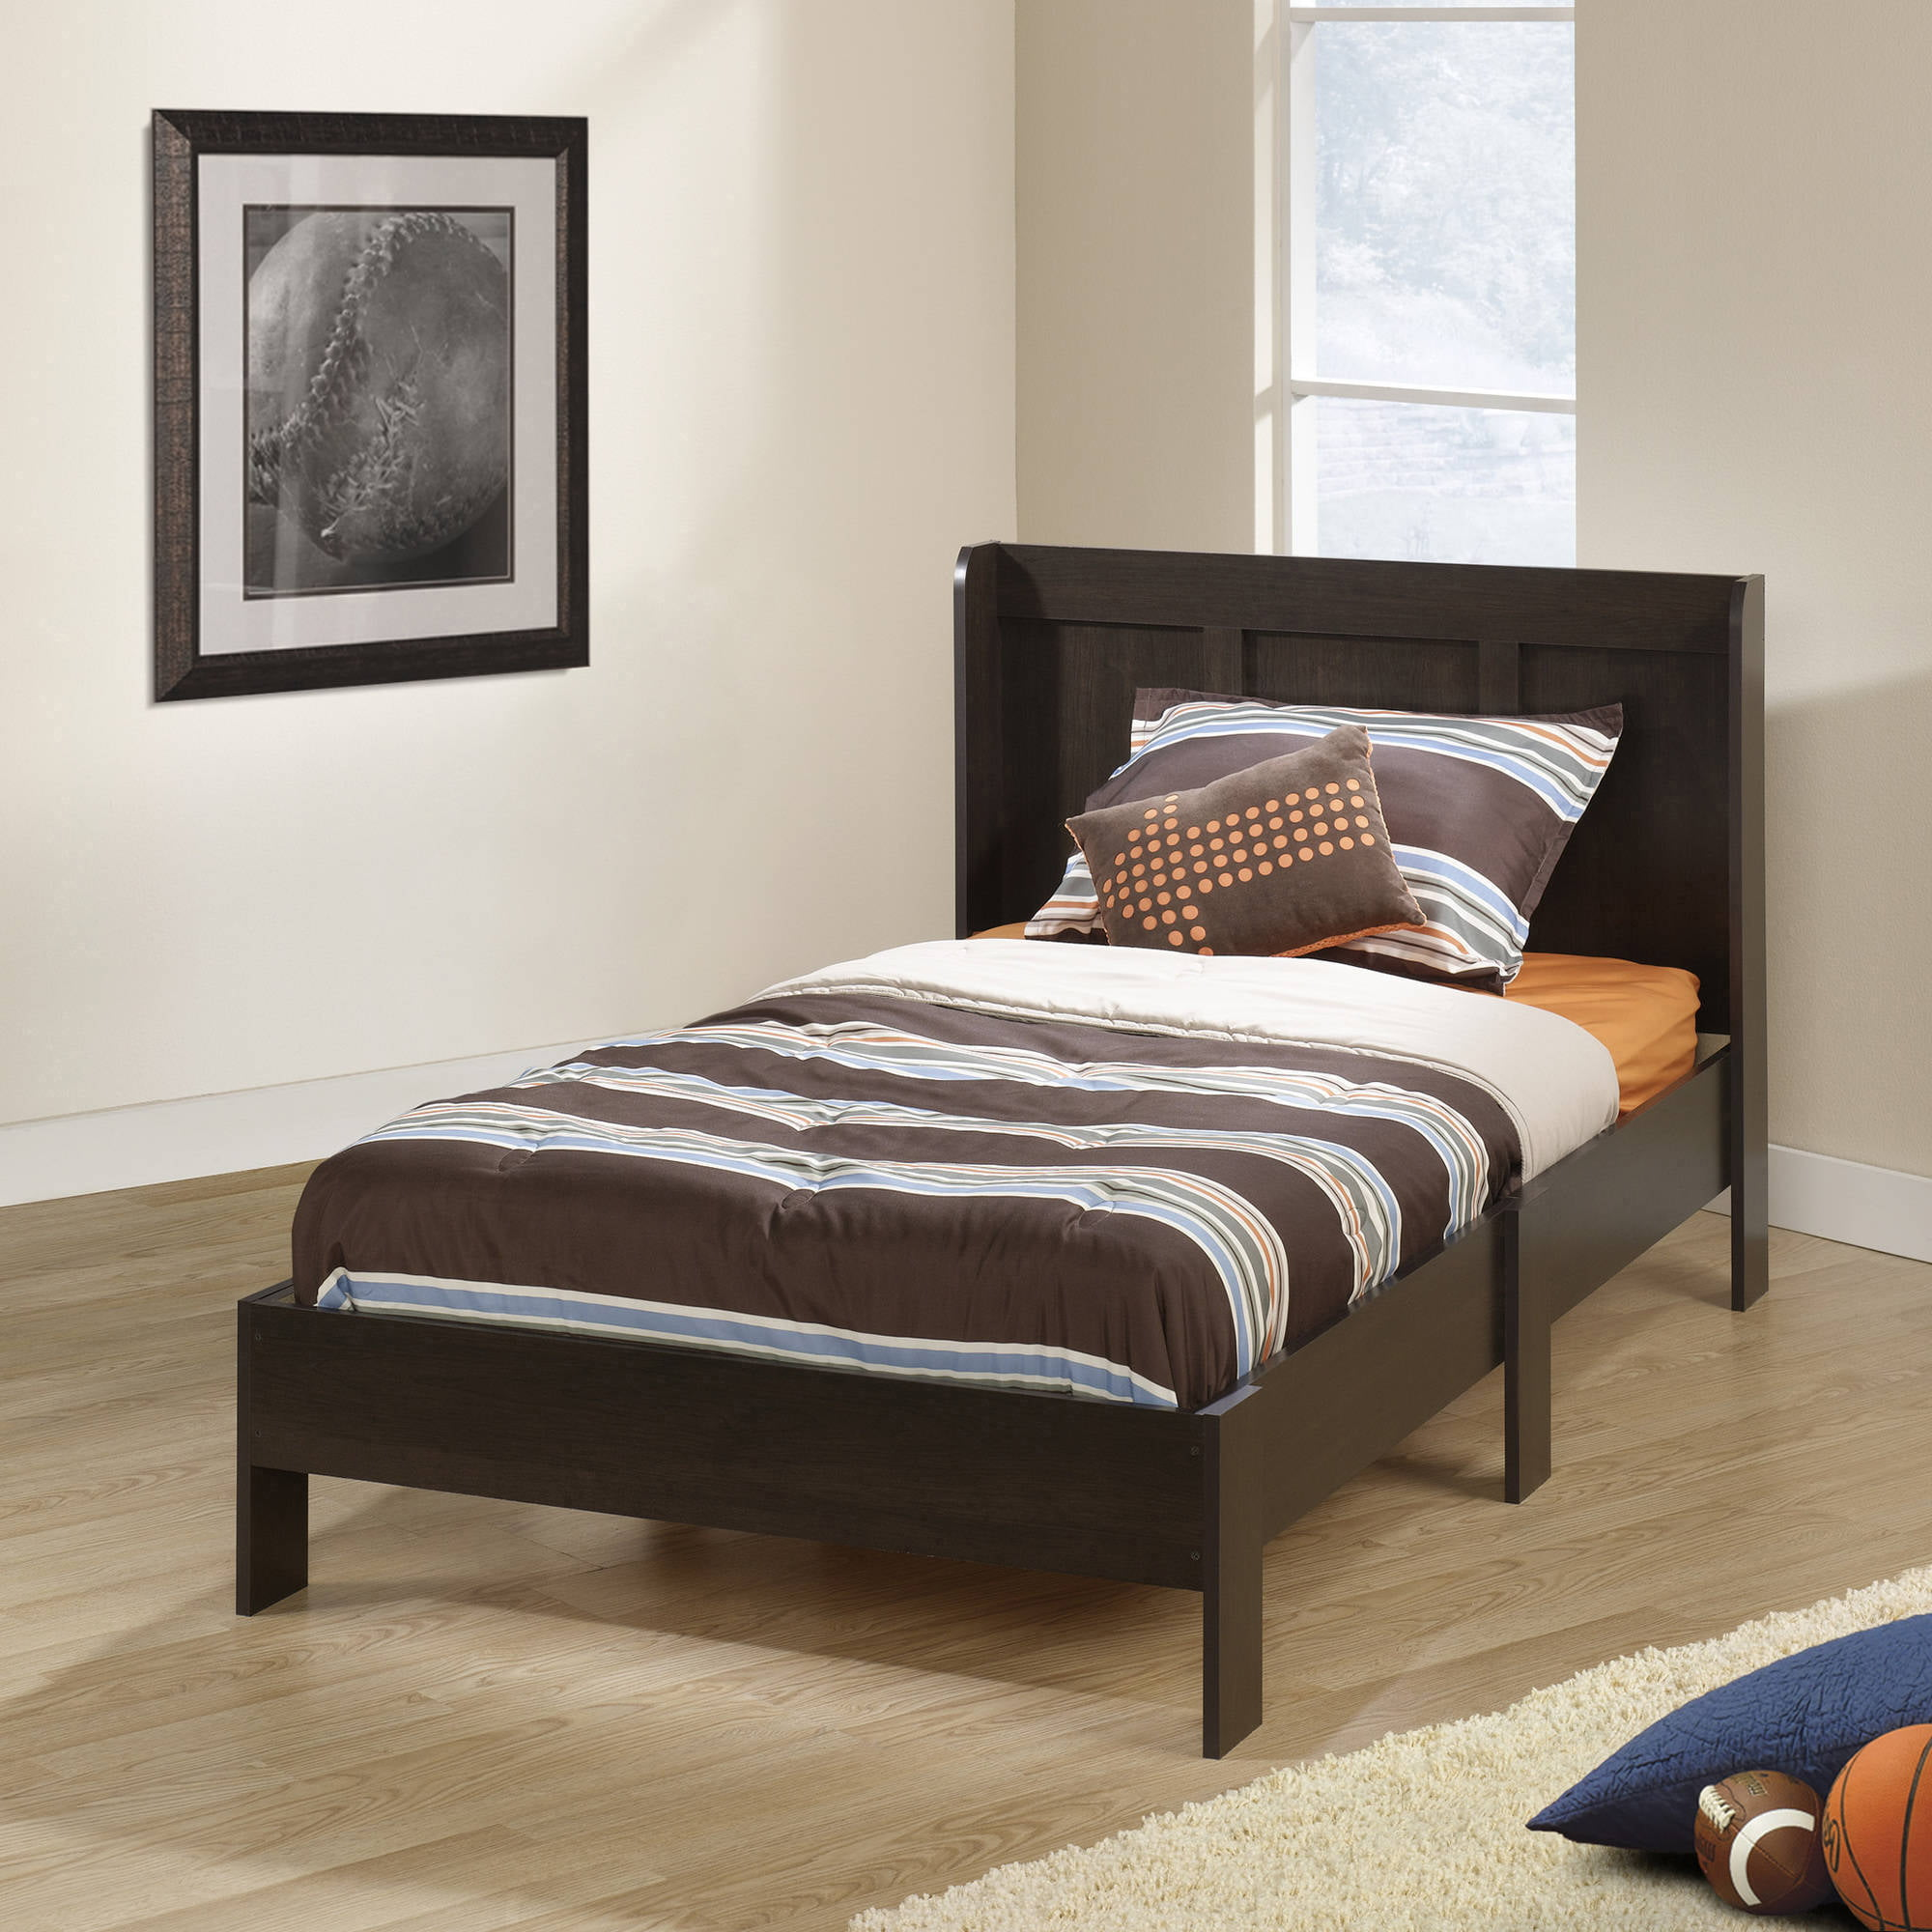 Sauder Parklane Twin Platform Bed and Headboard Multiple Finishes